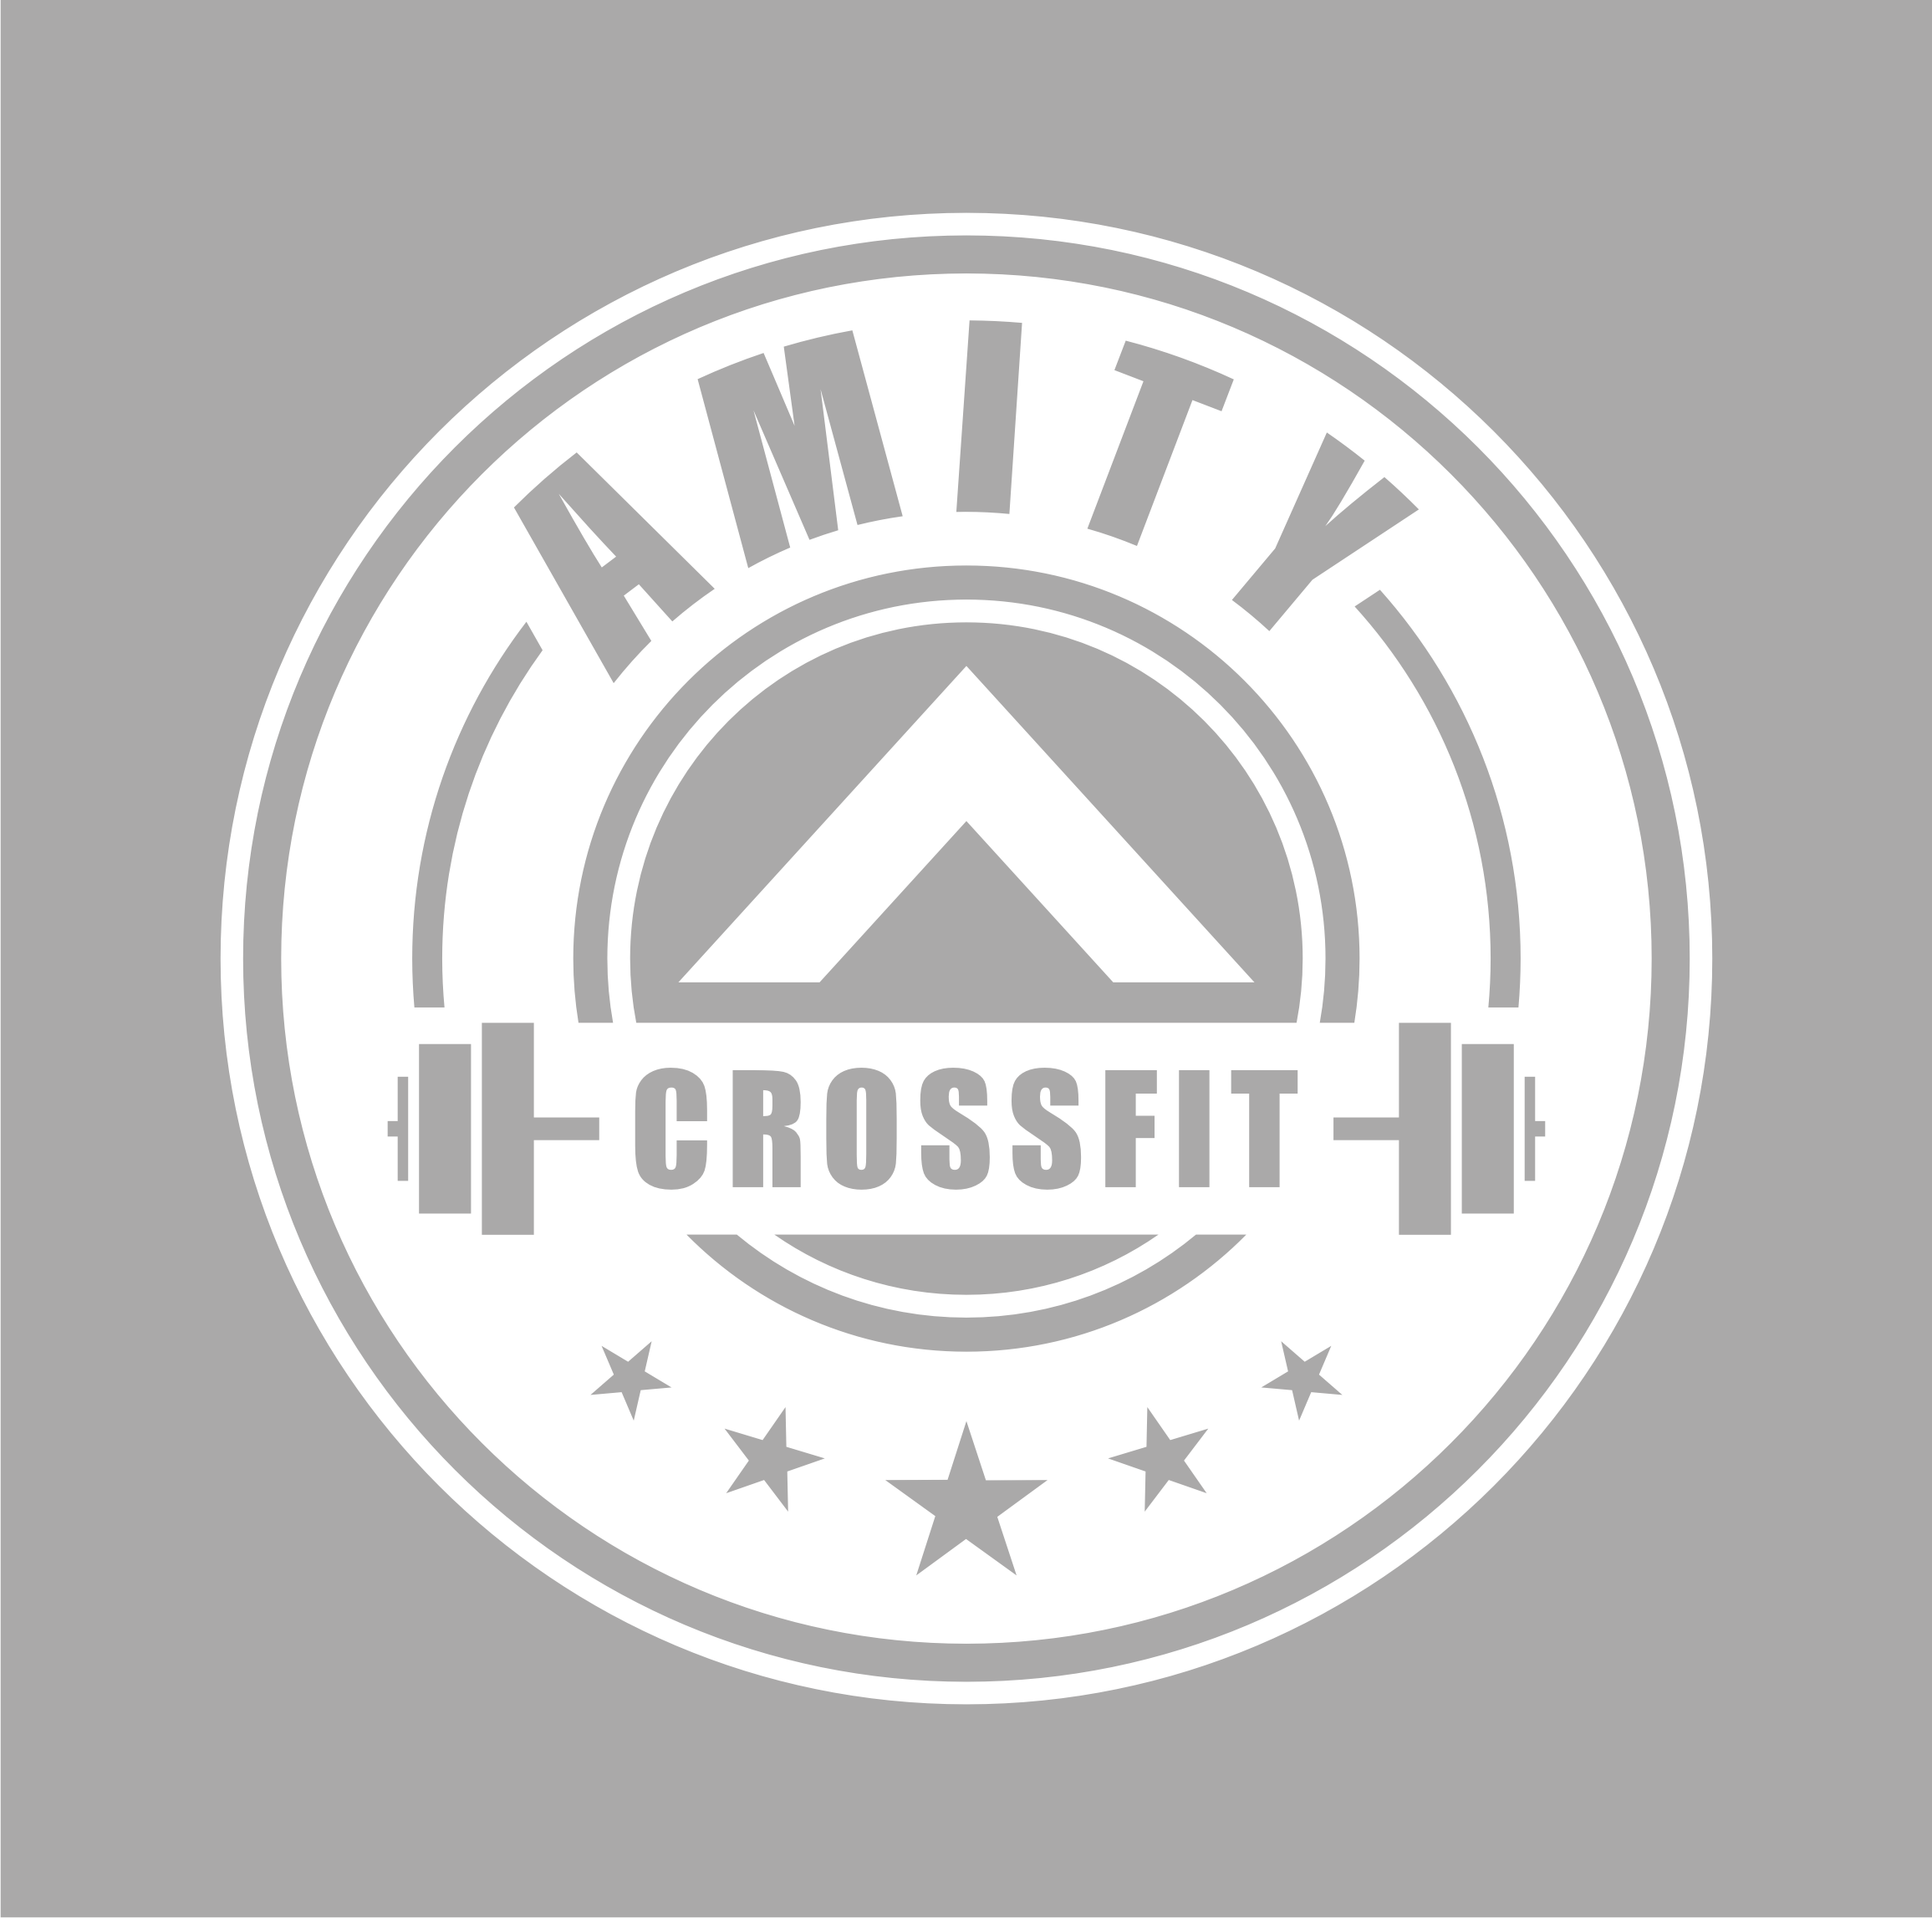 Help me create brand recognition for my CrossFit gym